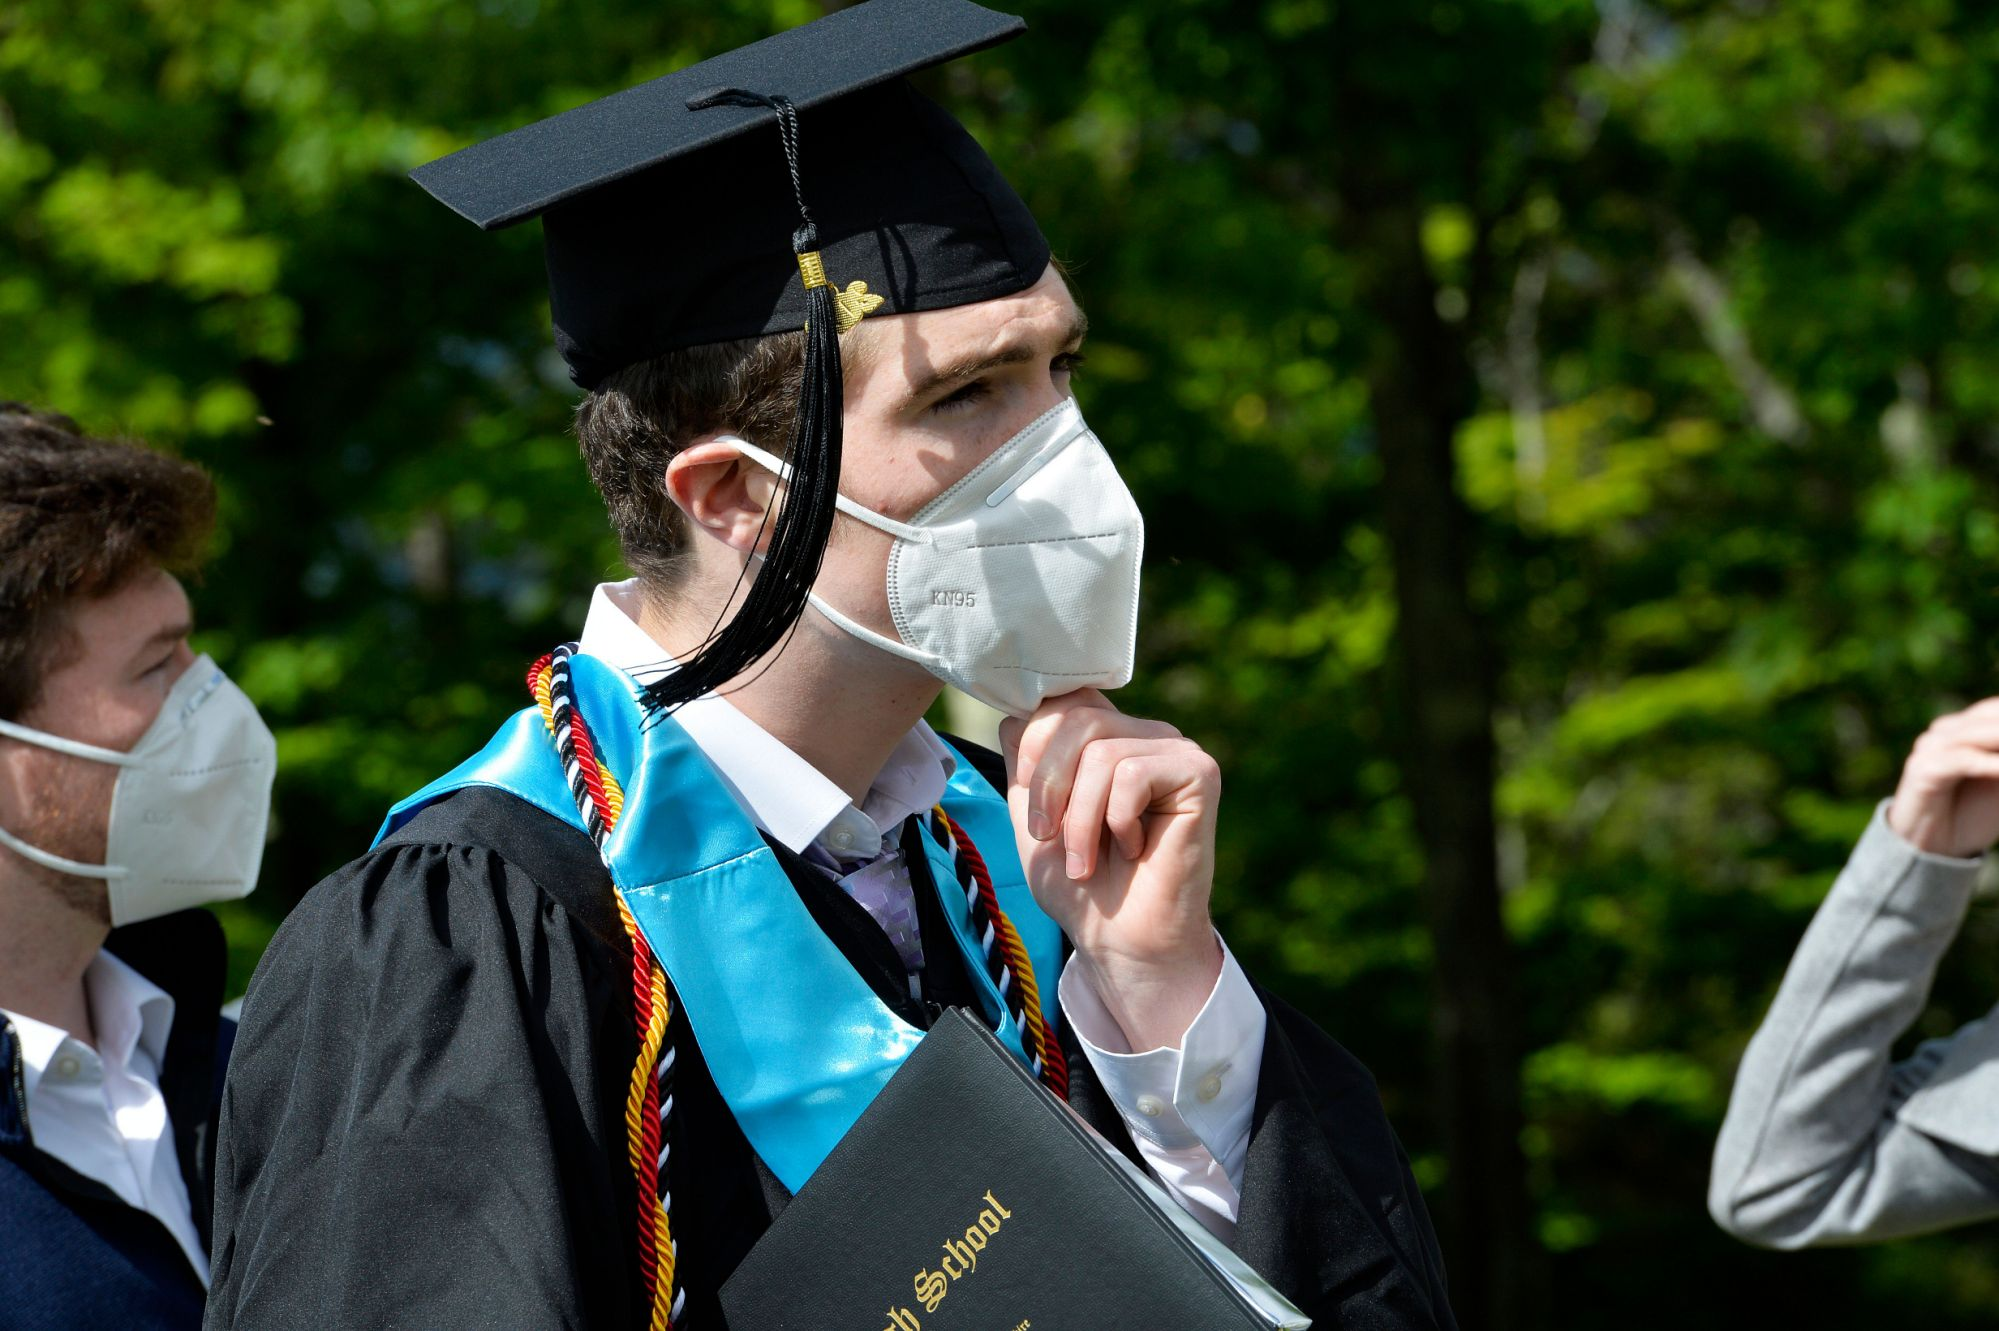 Student loans arise as potential flashpoint of negotiations